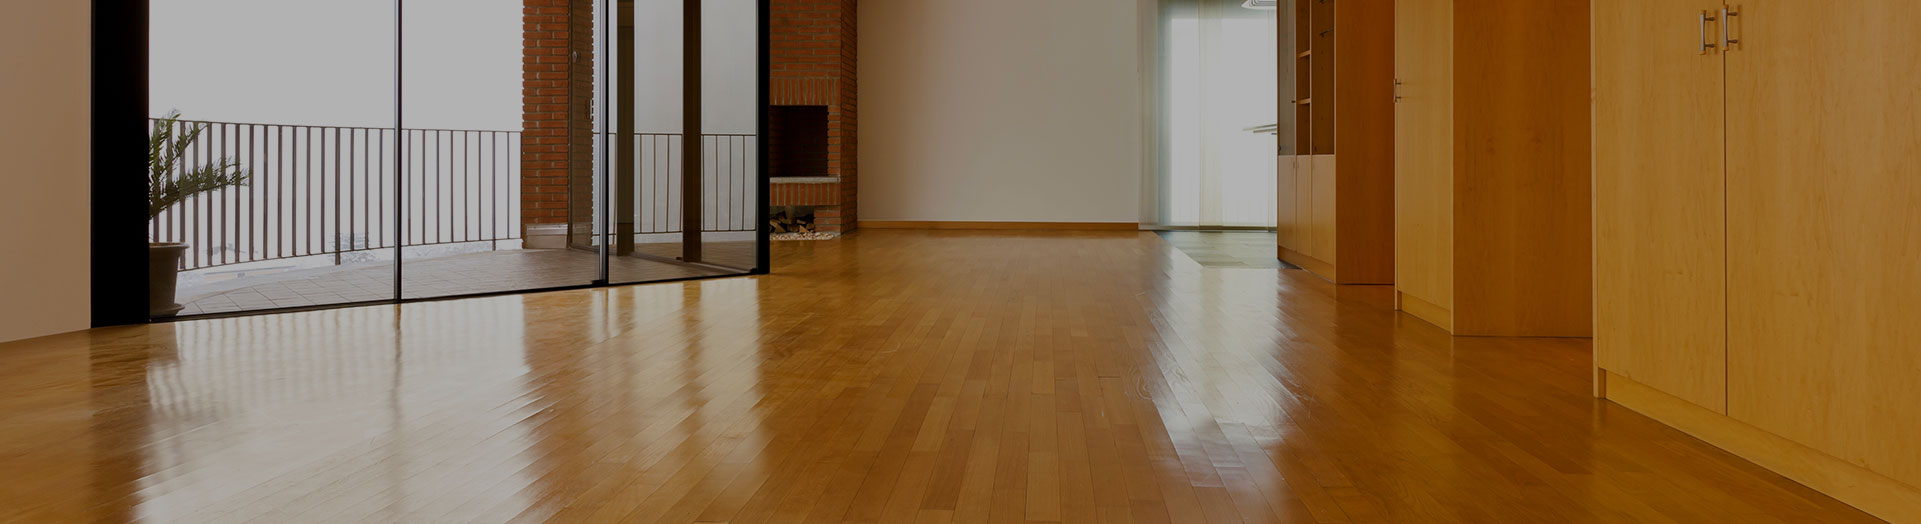 Good levelling good coverage good washability excellent hiding low - Our New Offering Oasis Wood Coatings